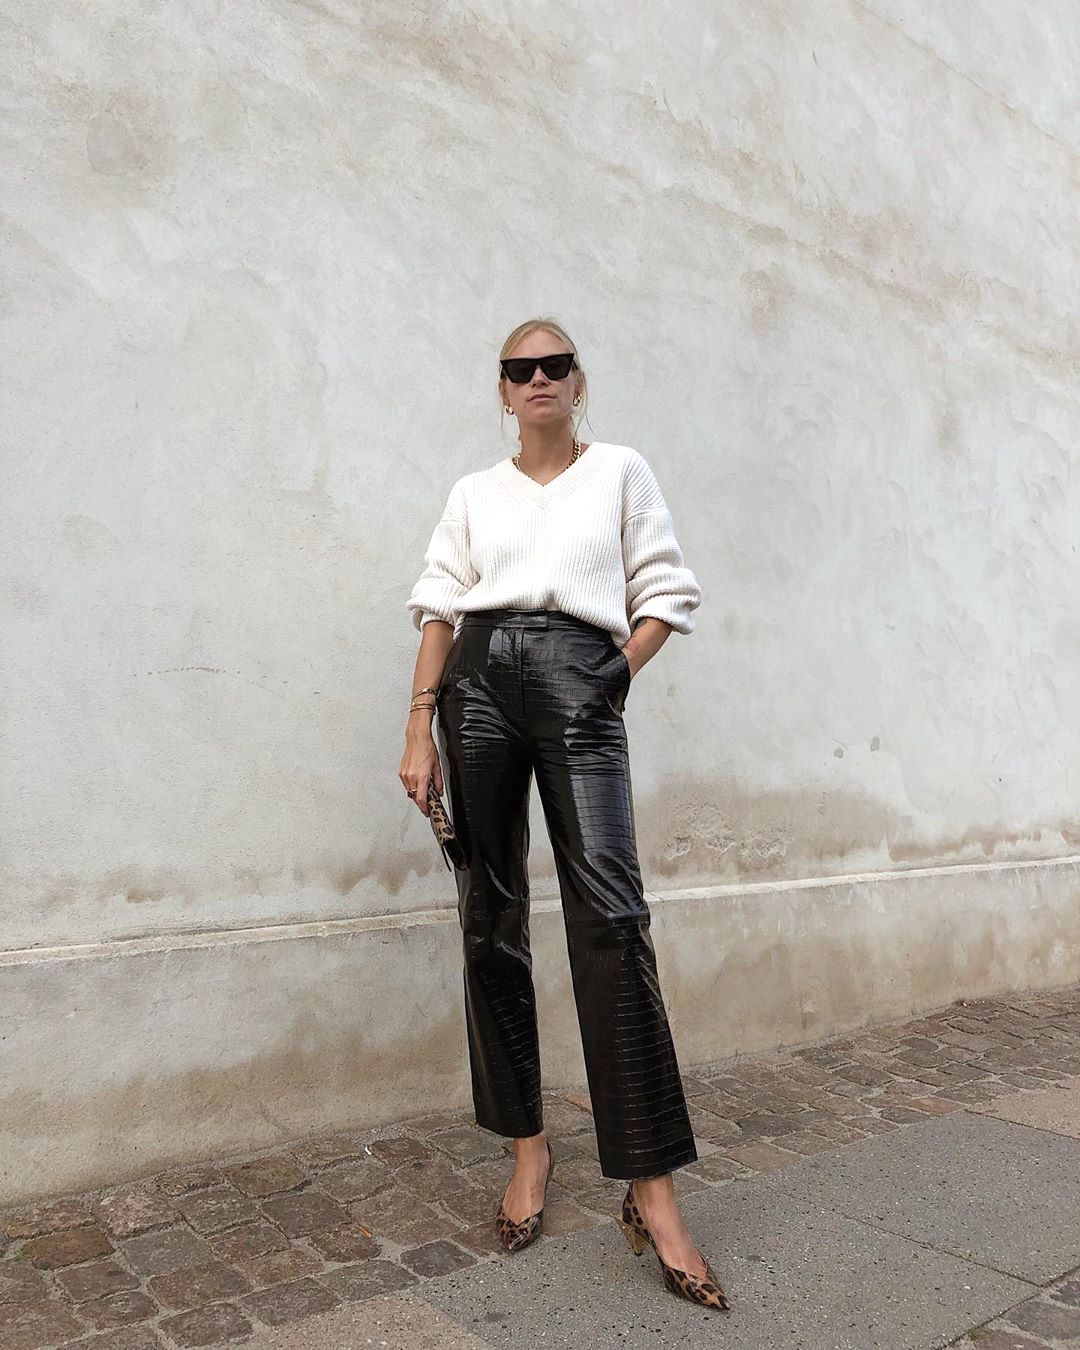 A Stylish Way to Transition Leather Pants Into Spring